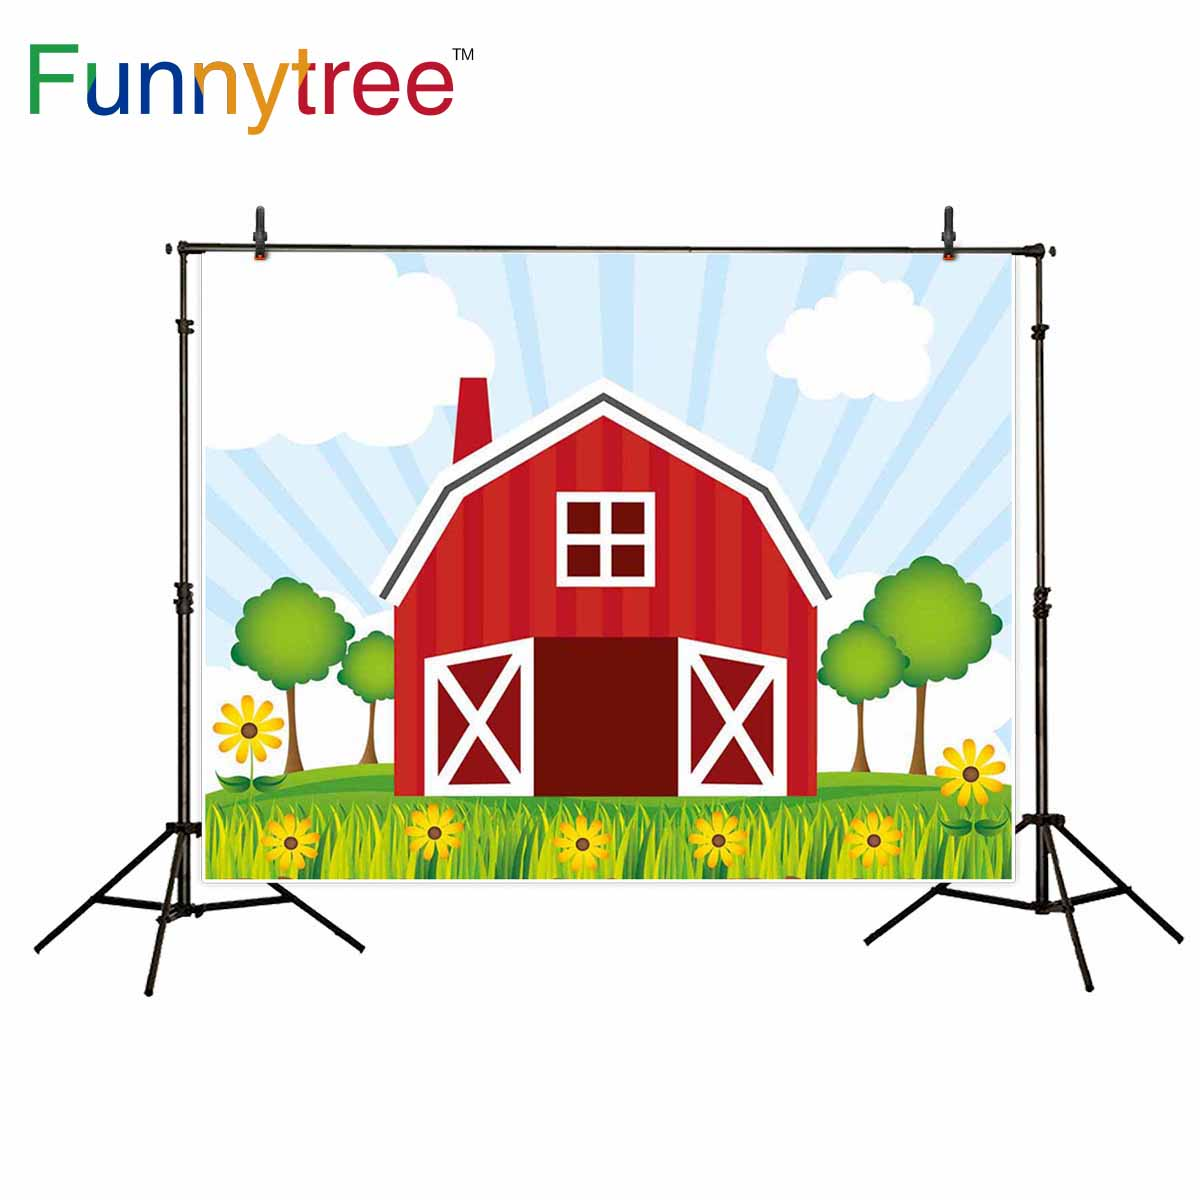 Us 9 58 31 Off Funnytree Backgrounds For Photo Studio Red Barn Cartoon Farm Kids Warehouse Flower Tree Photography Backdrop Photocall In Background